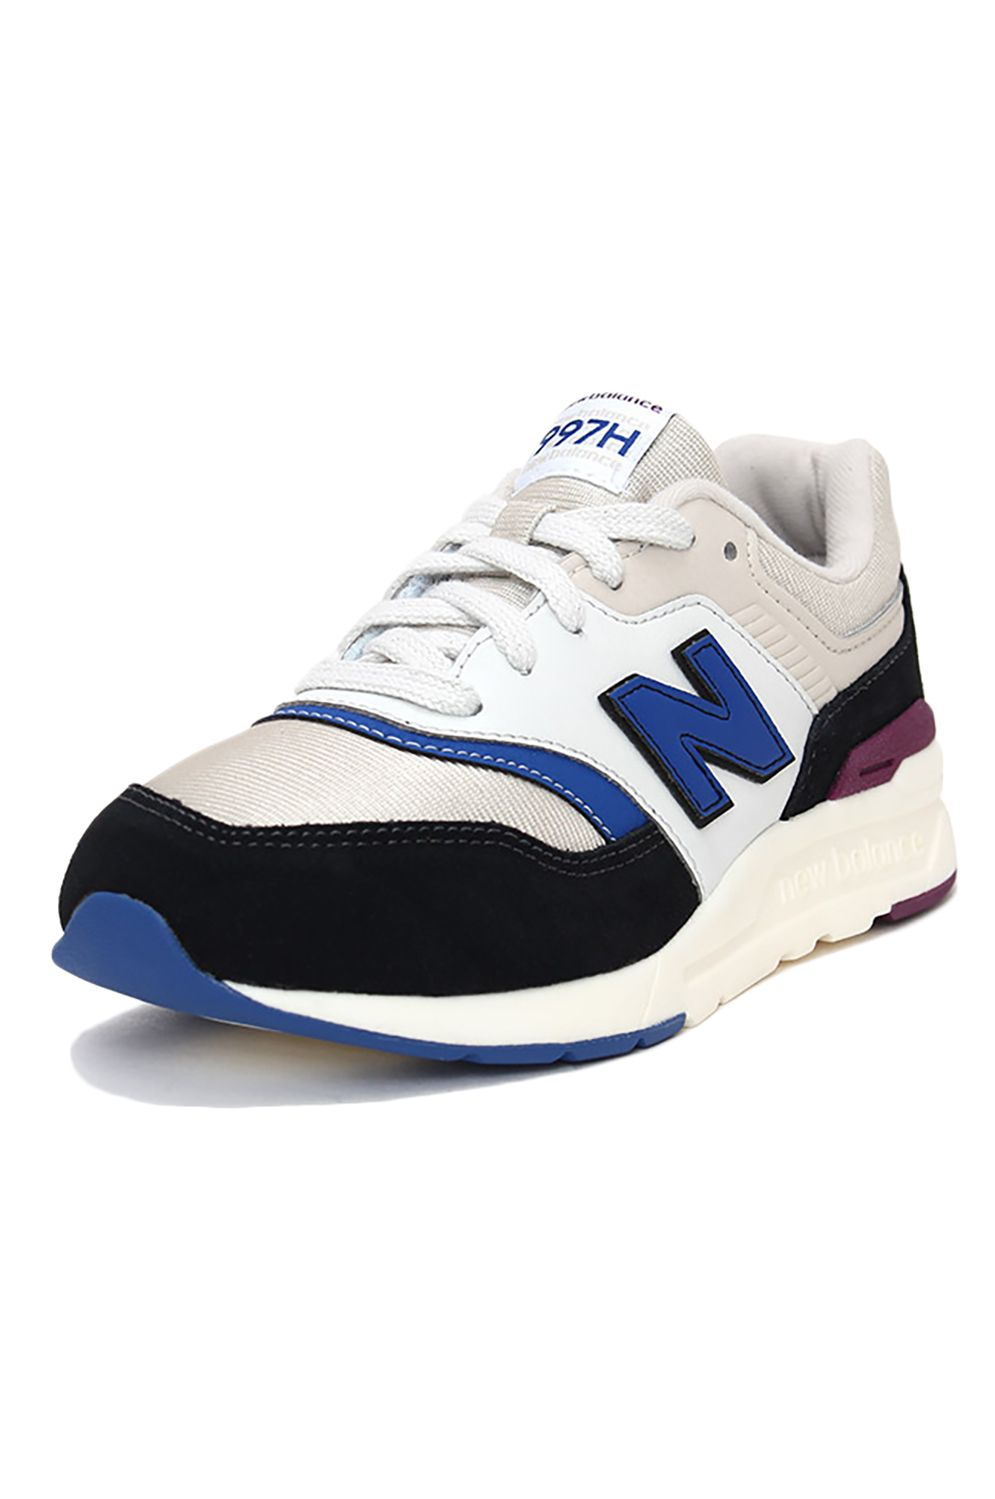 Tenis New Balance GR997 Grey/Black